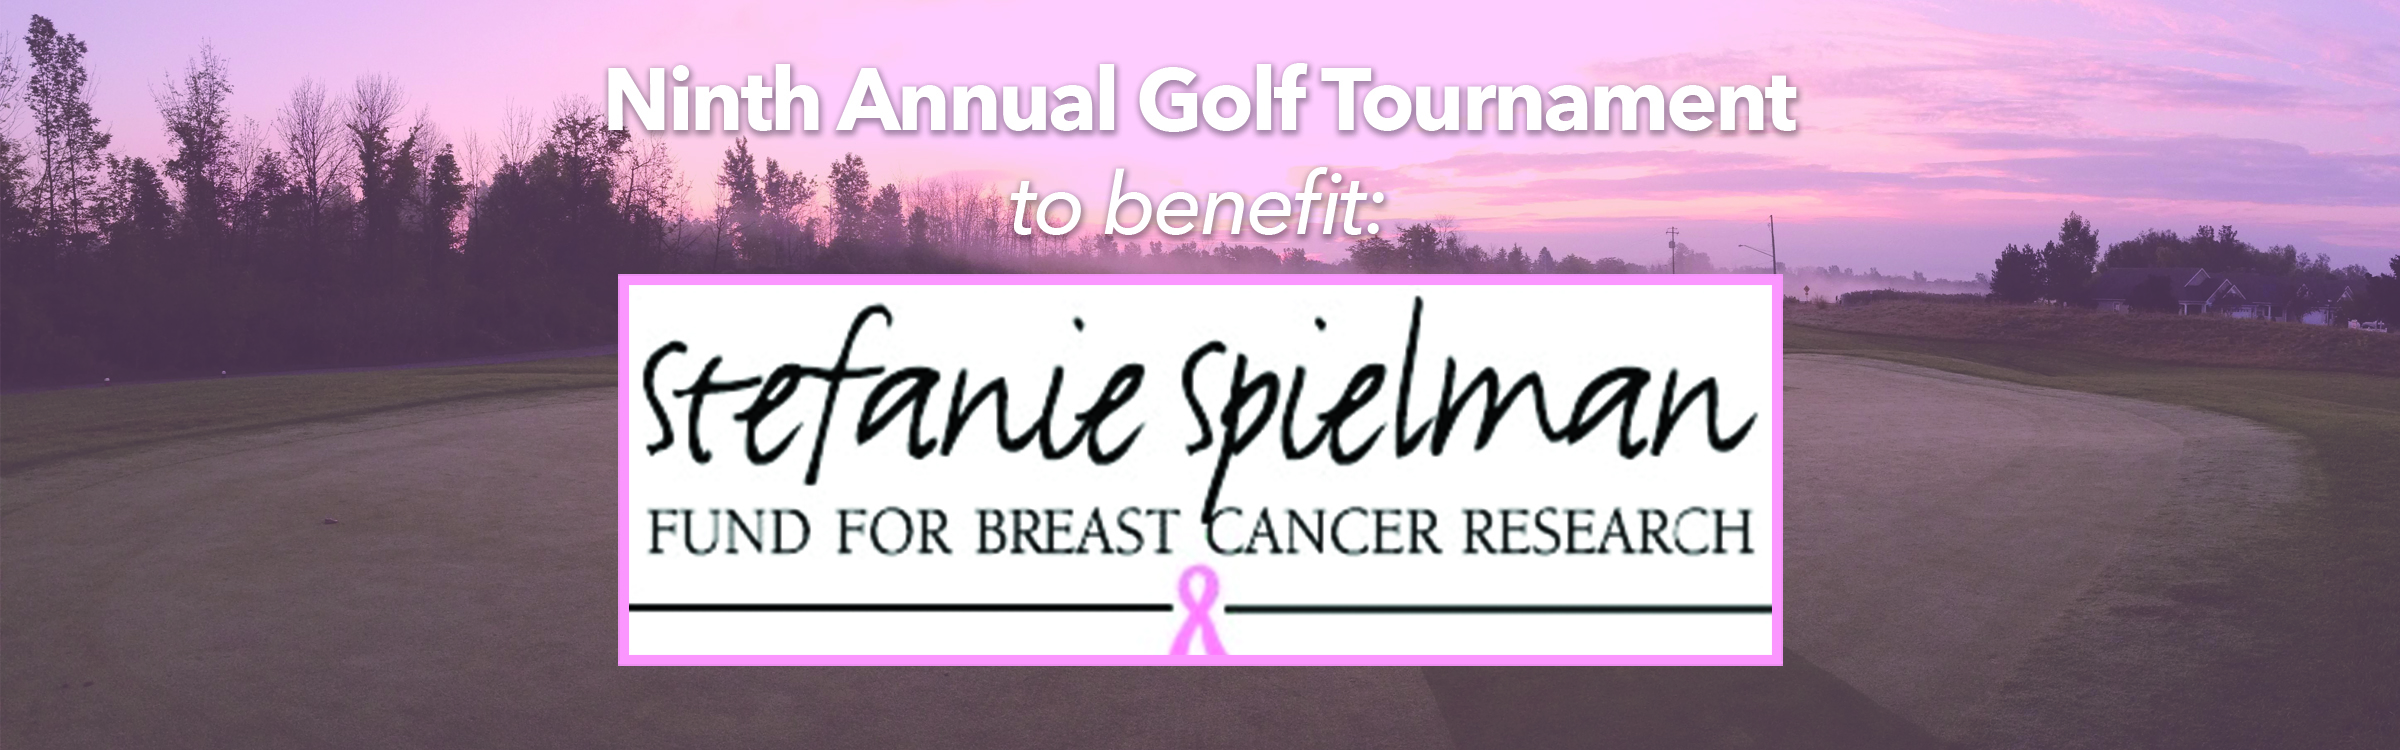 driving-fore-cr-blog-benefit-banner.jpg